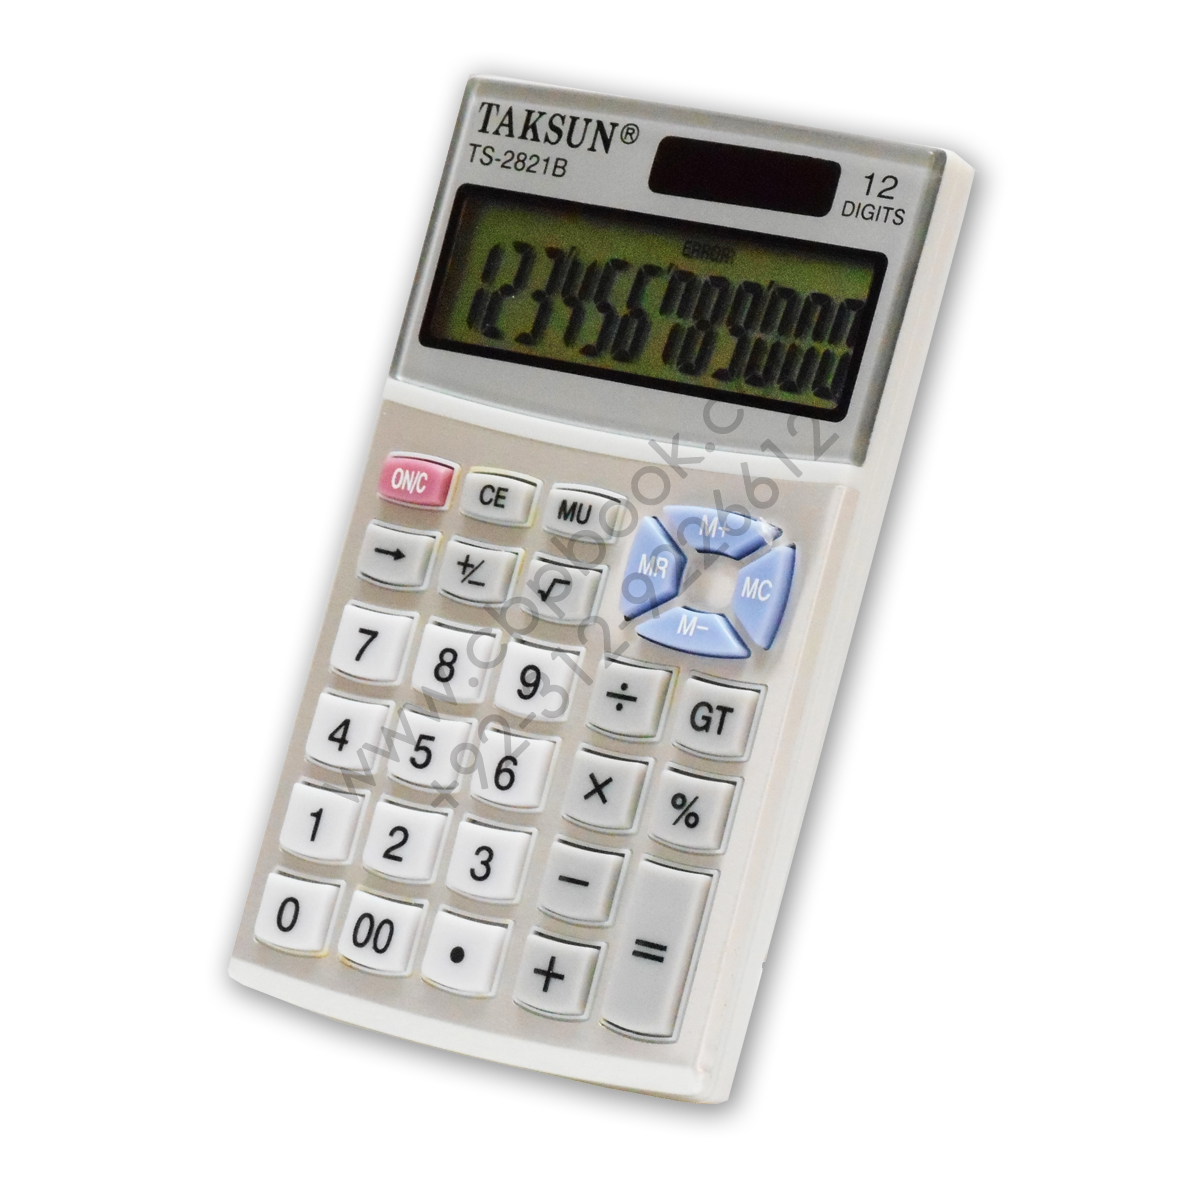 12 digit pocket size electronic calculator